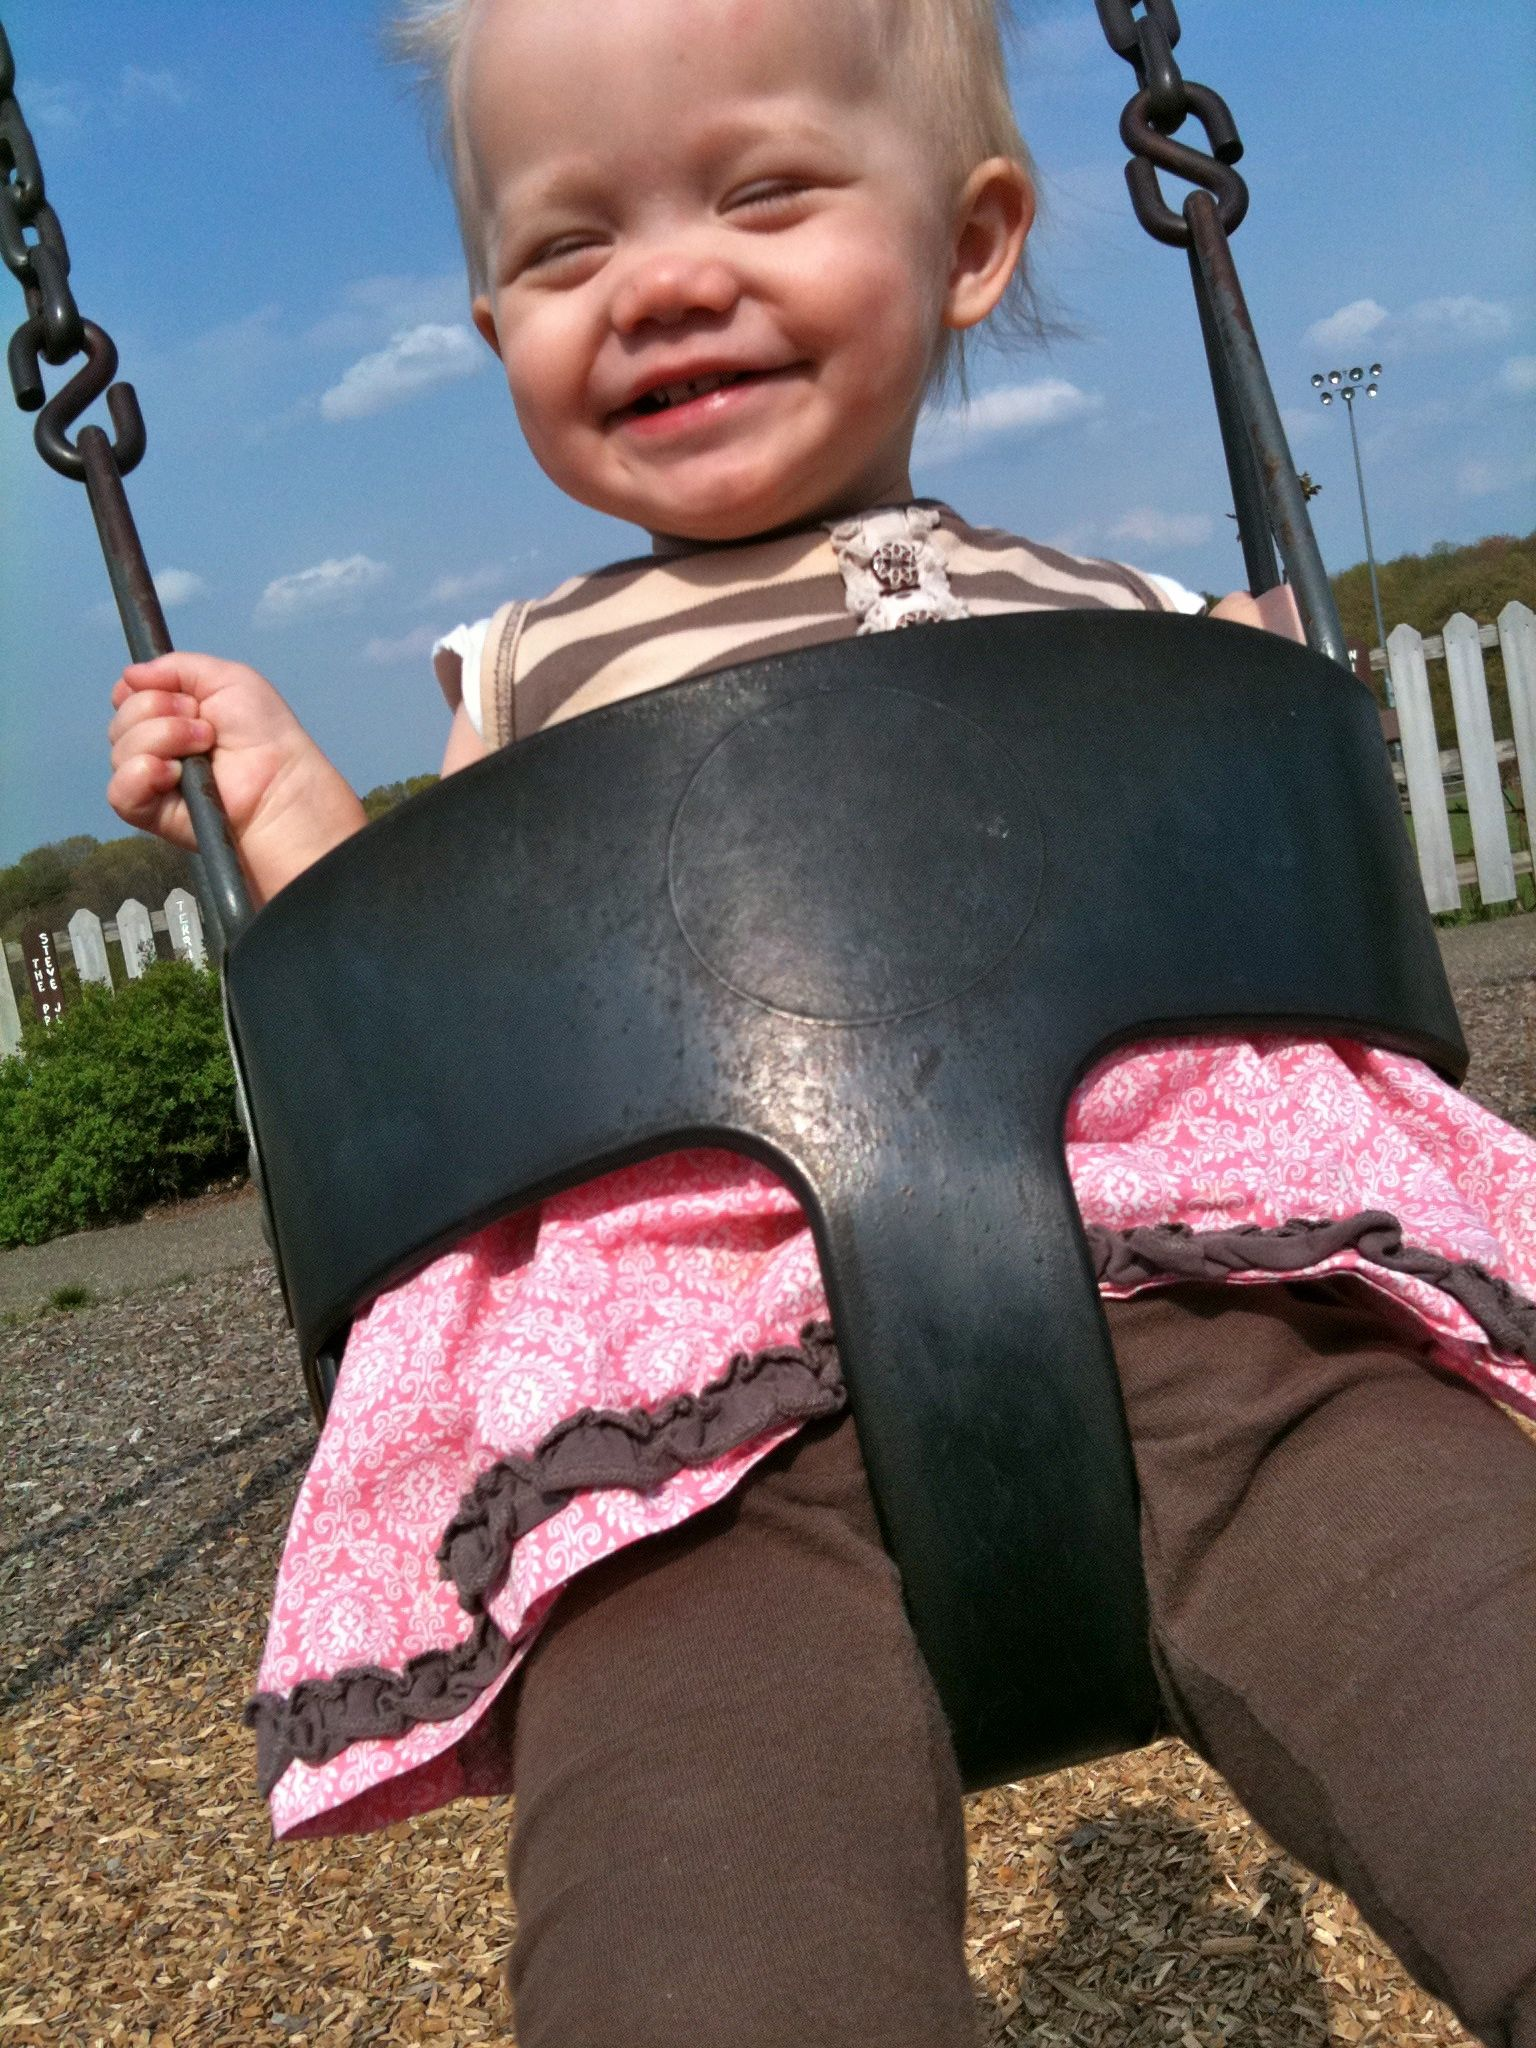 Swinging at Blueberry Hill Park